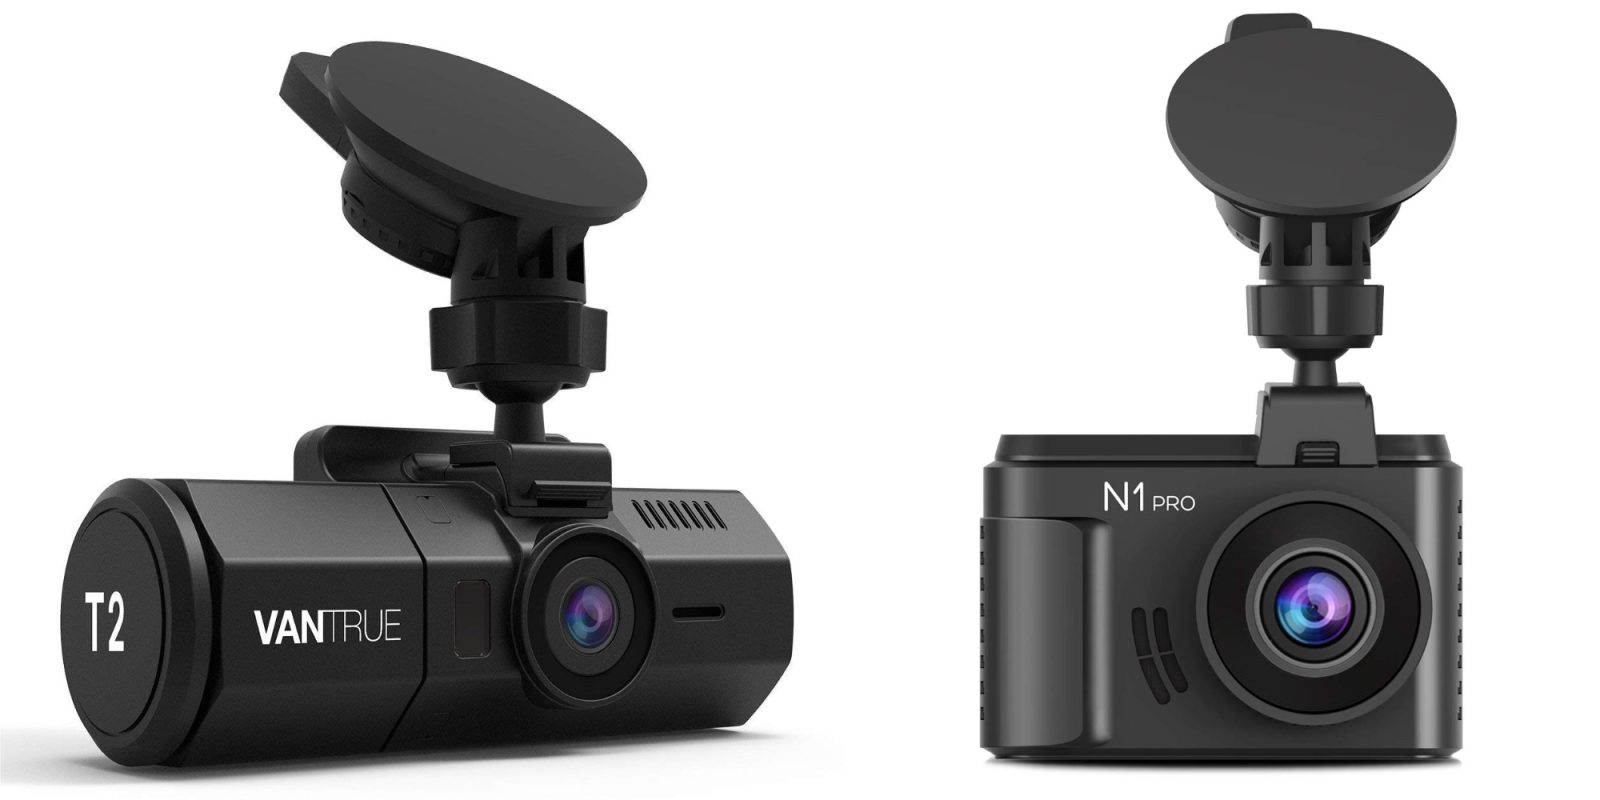 Save up 37% off Vantrue dash cams at new lows with Prime Day deals from $56